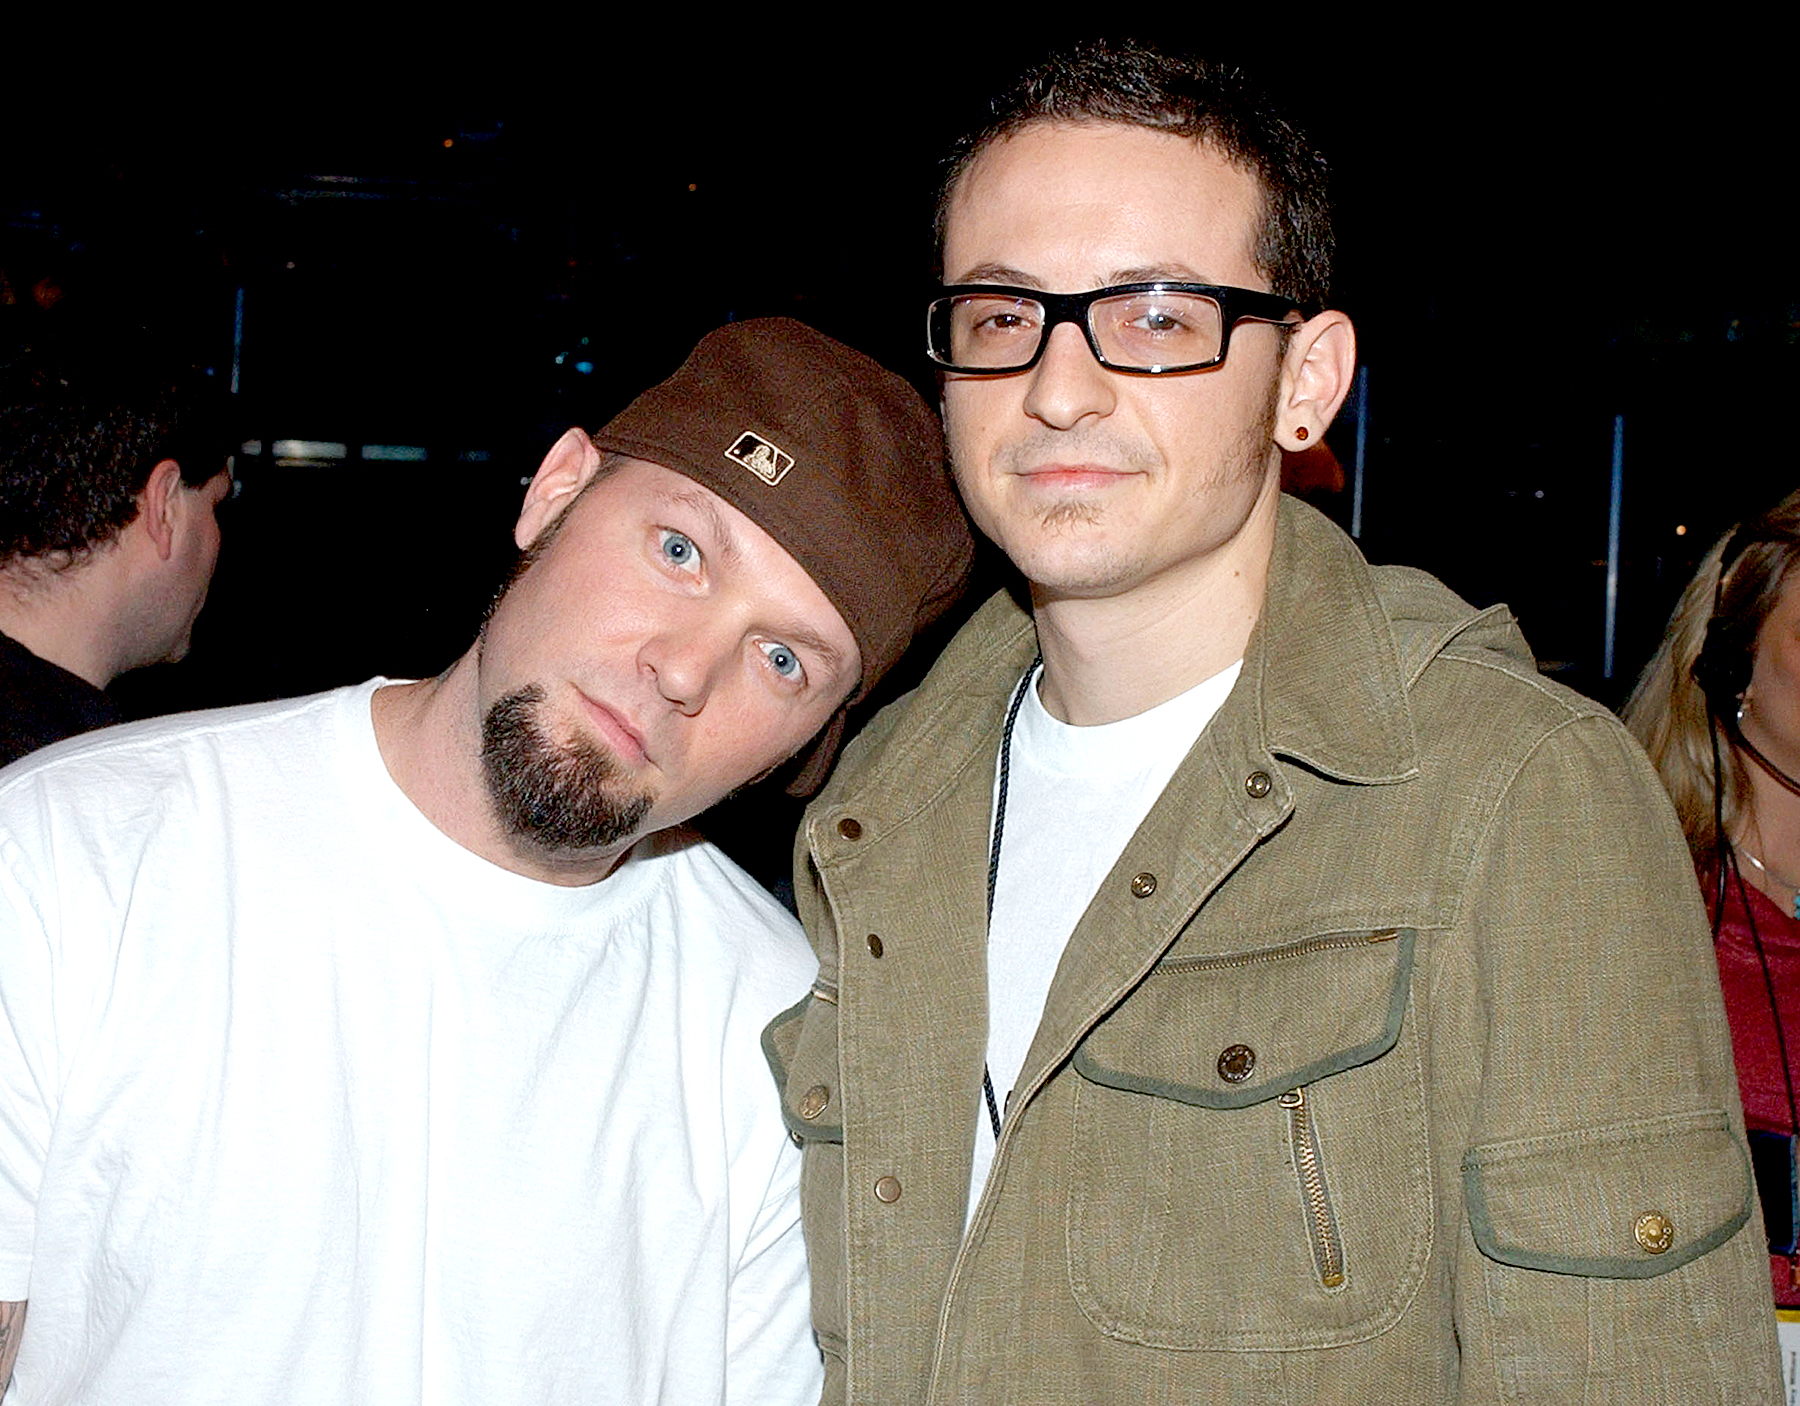 Topic, fred durst biography consider, that you